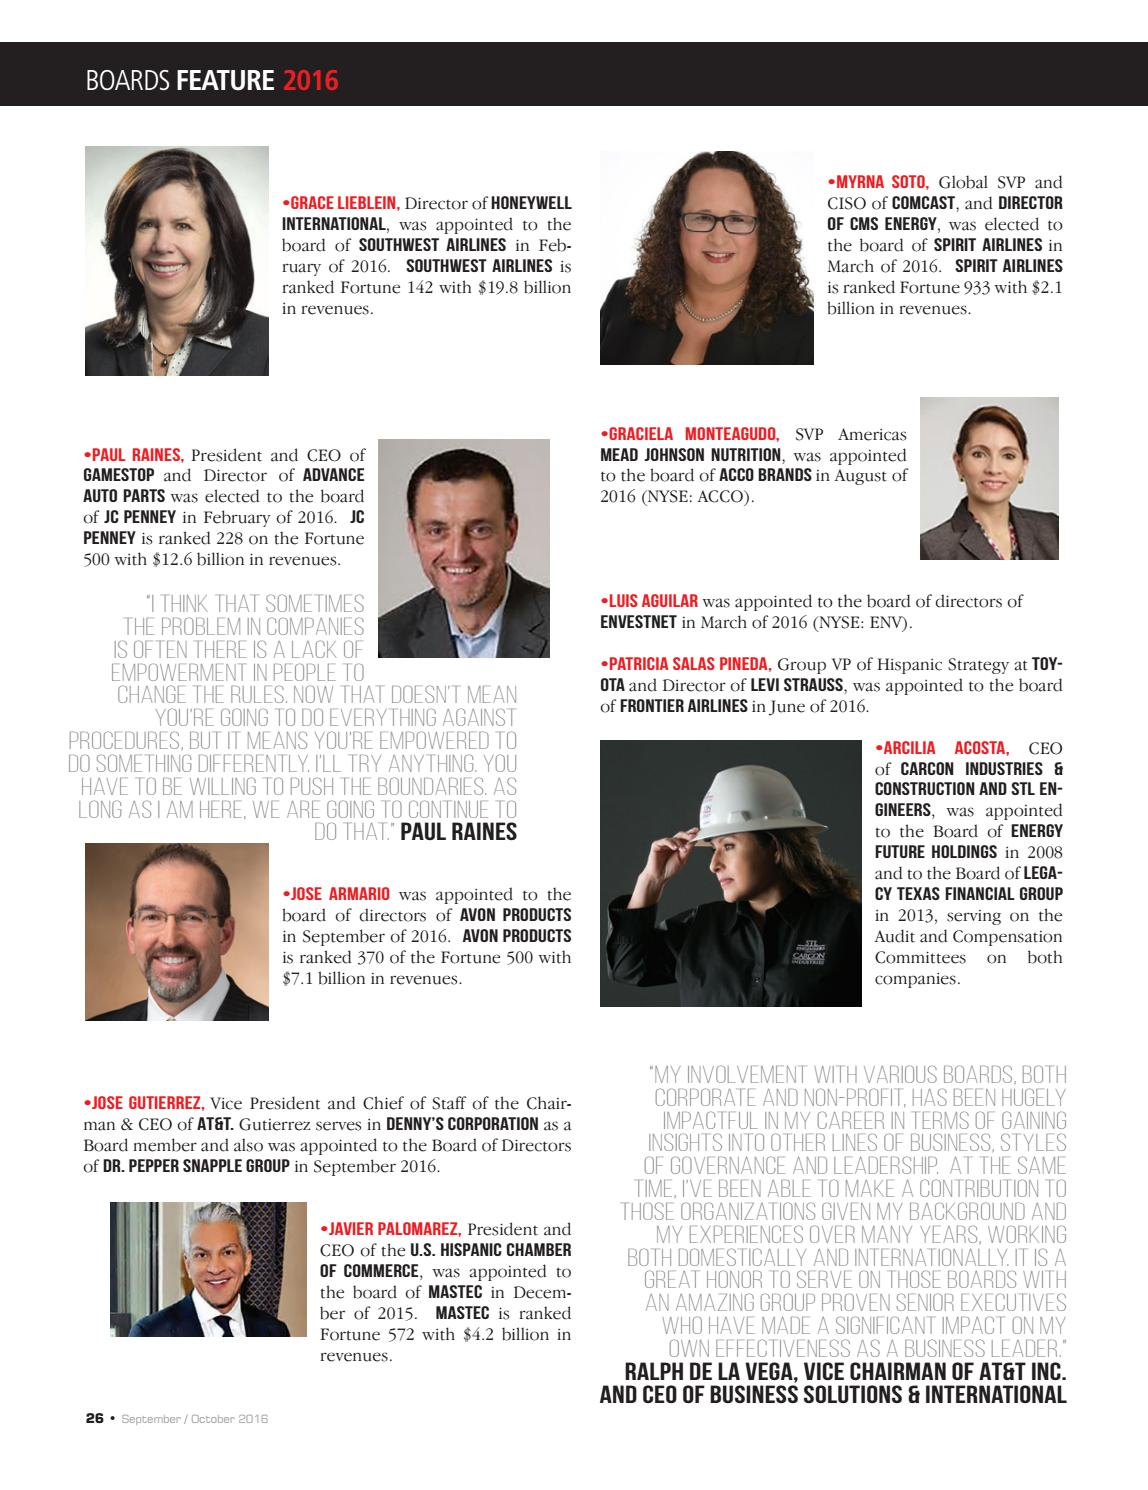 LATINO LEADERS MAGAZINE-SEPTEMBER/OCTOBER ISSUE by Latino Leaders